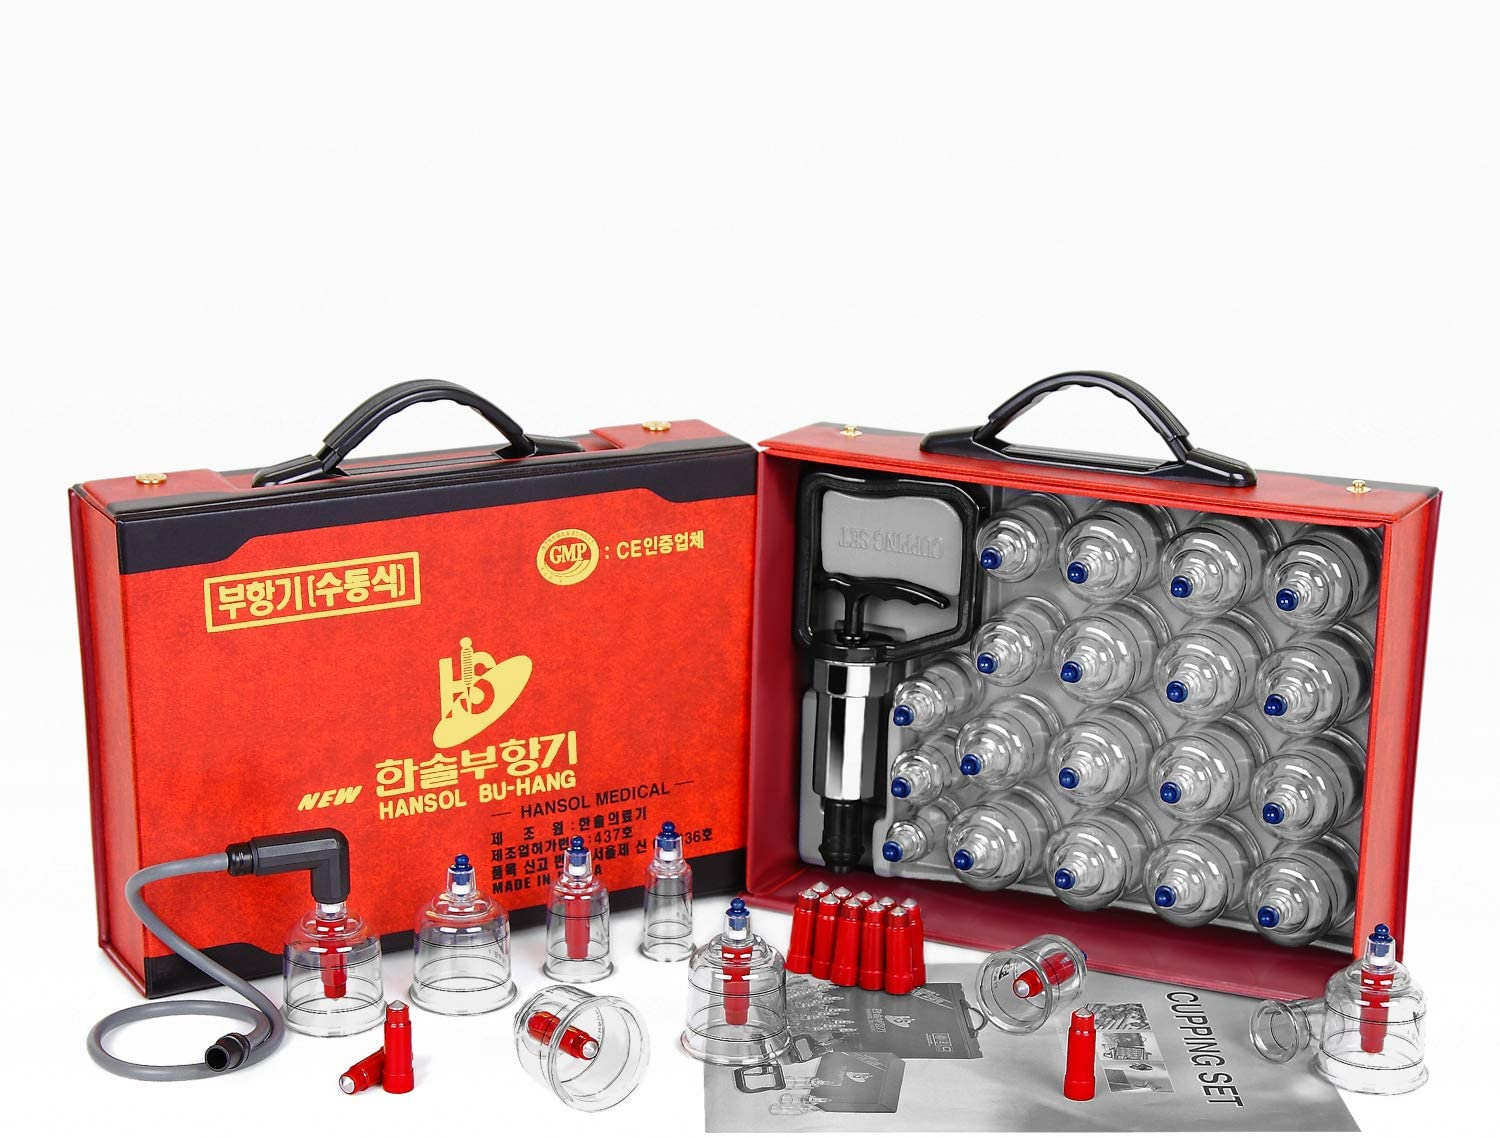 Hansol Professional Cupping Therapy Equipment Set with pumping handle 19 Cups /English Manual (Made in Korea)